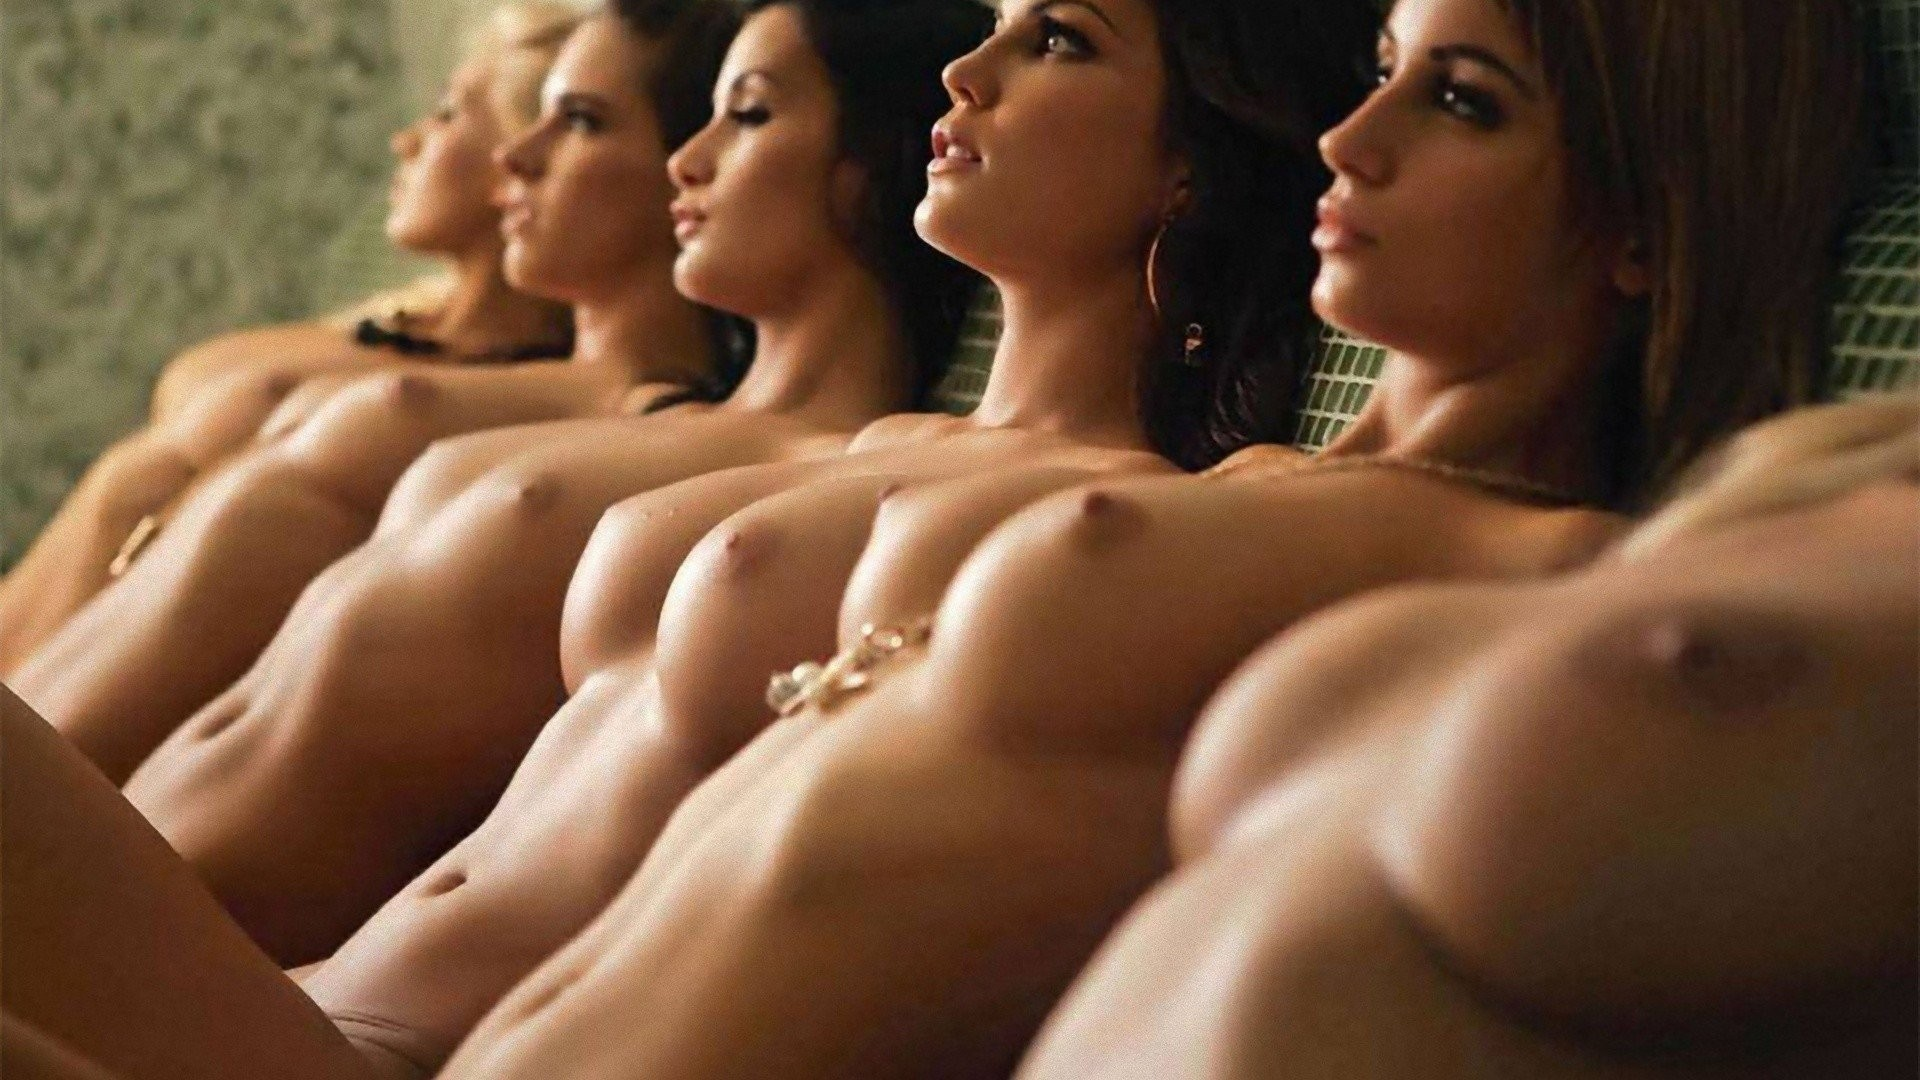 Nude Pics Of Young Women